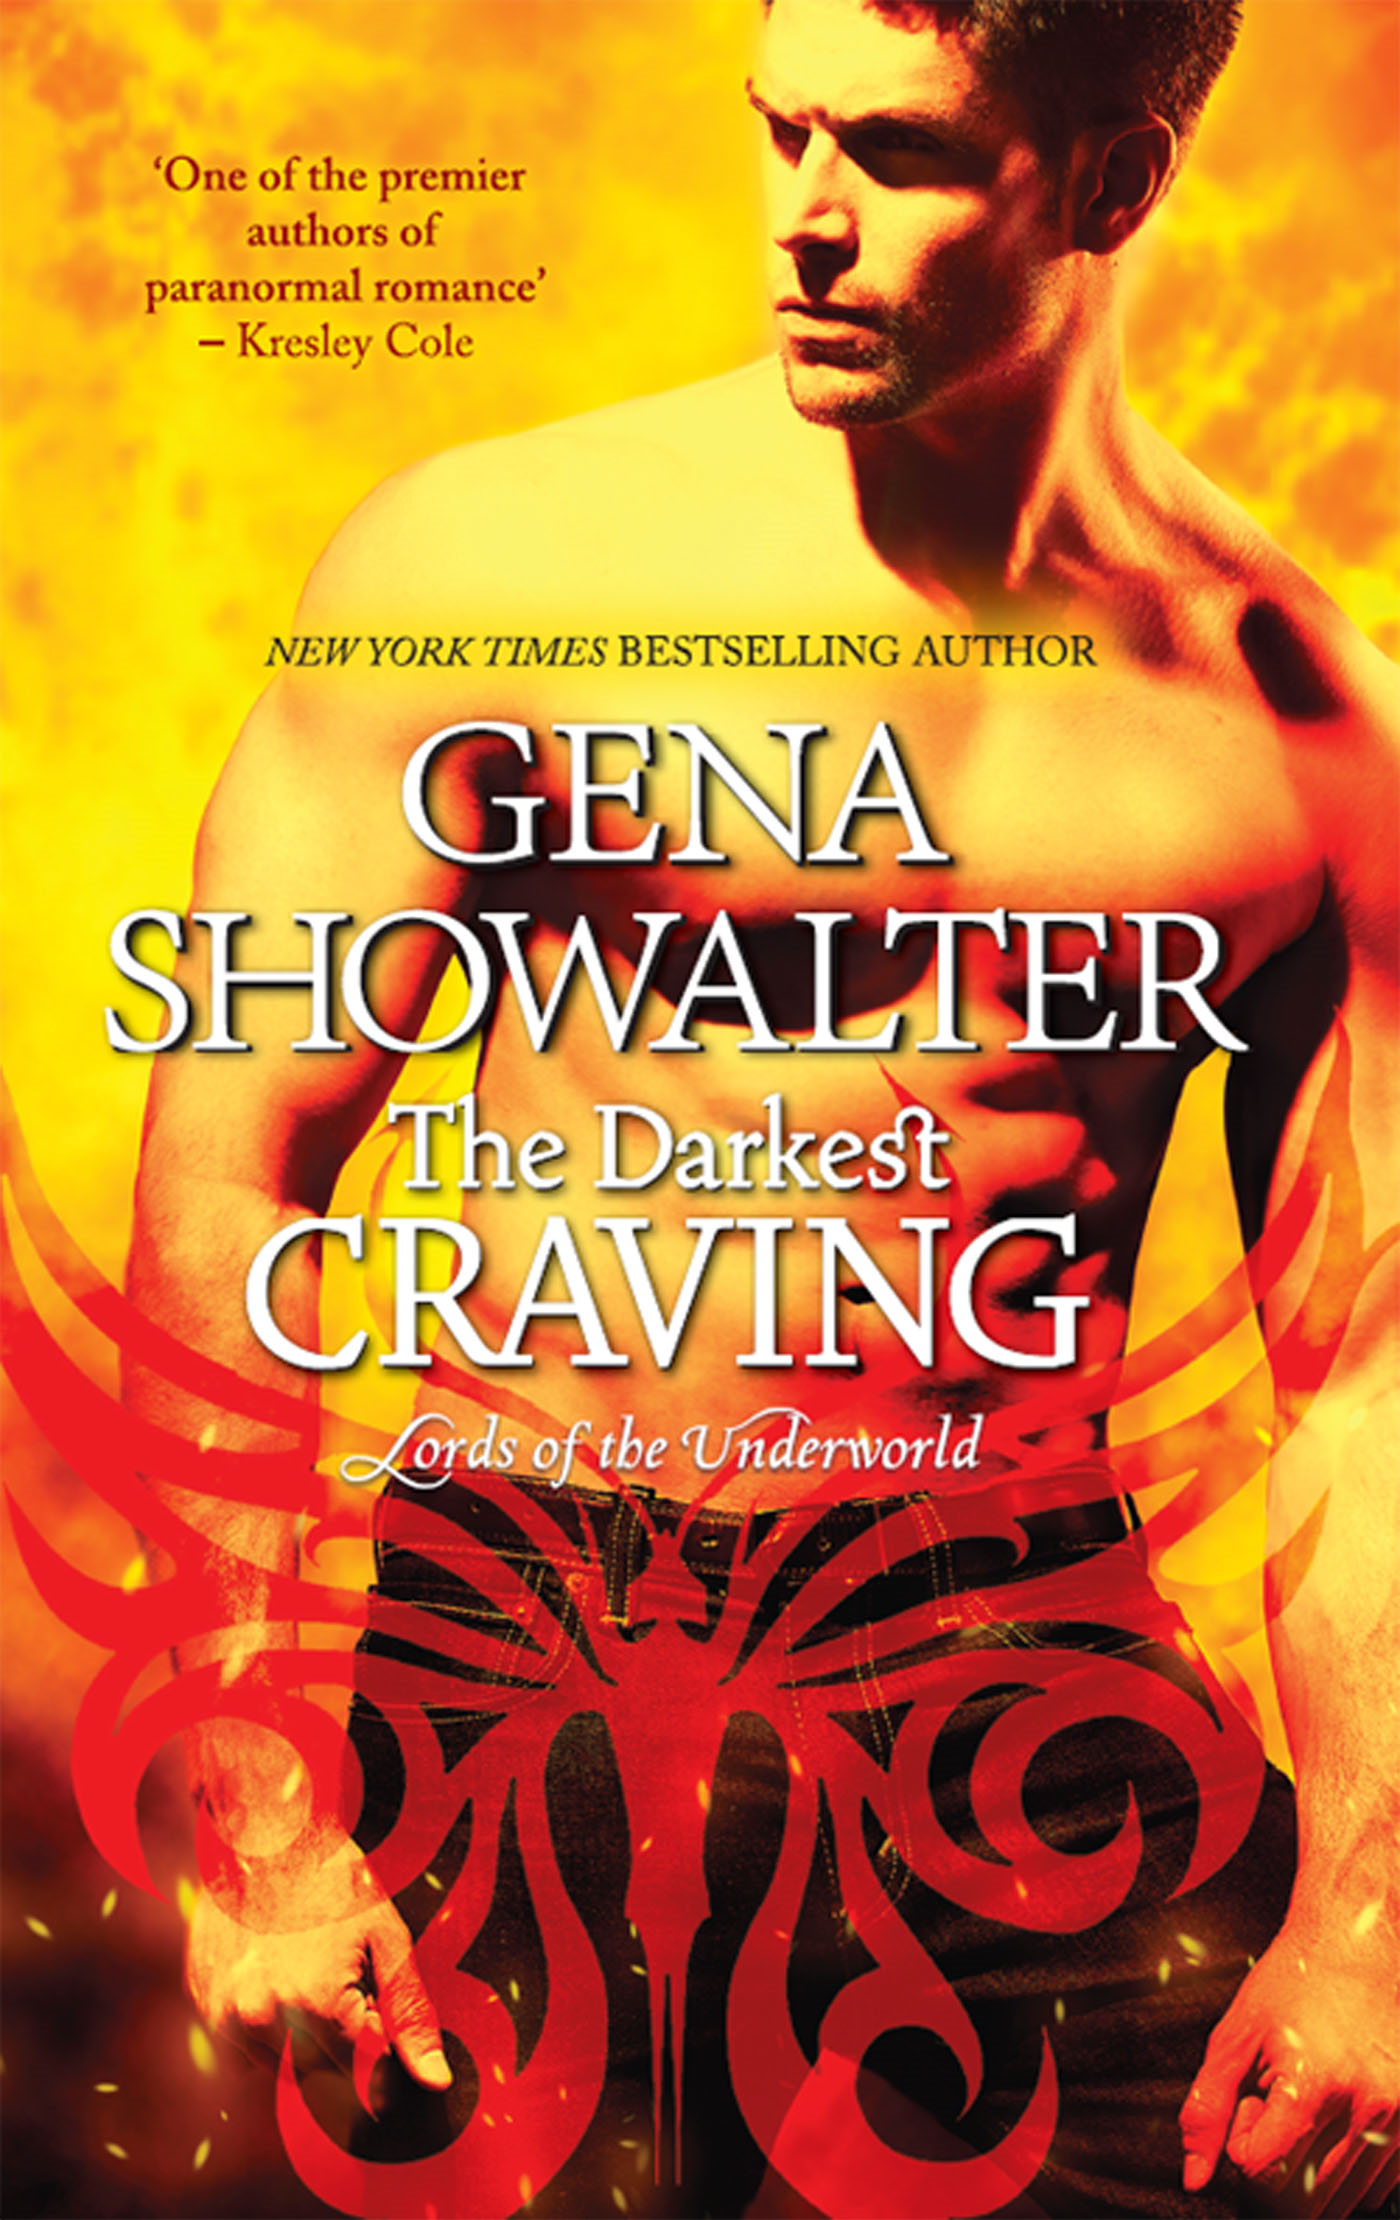 The Darkest Craving (Lords of the Underworld - Book 10)